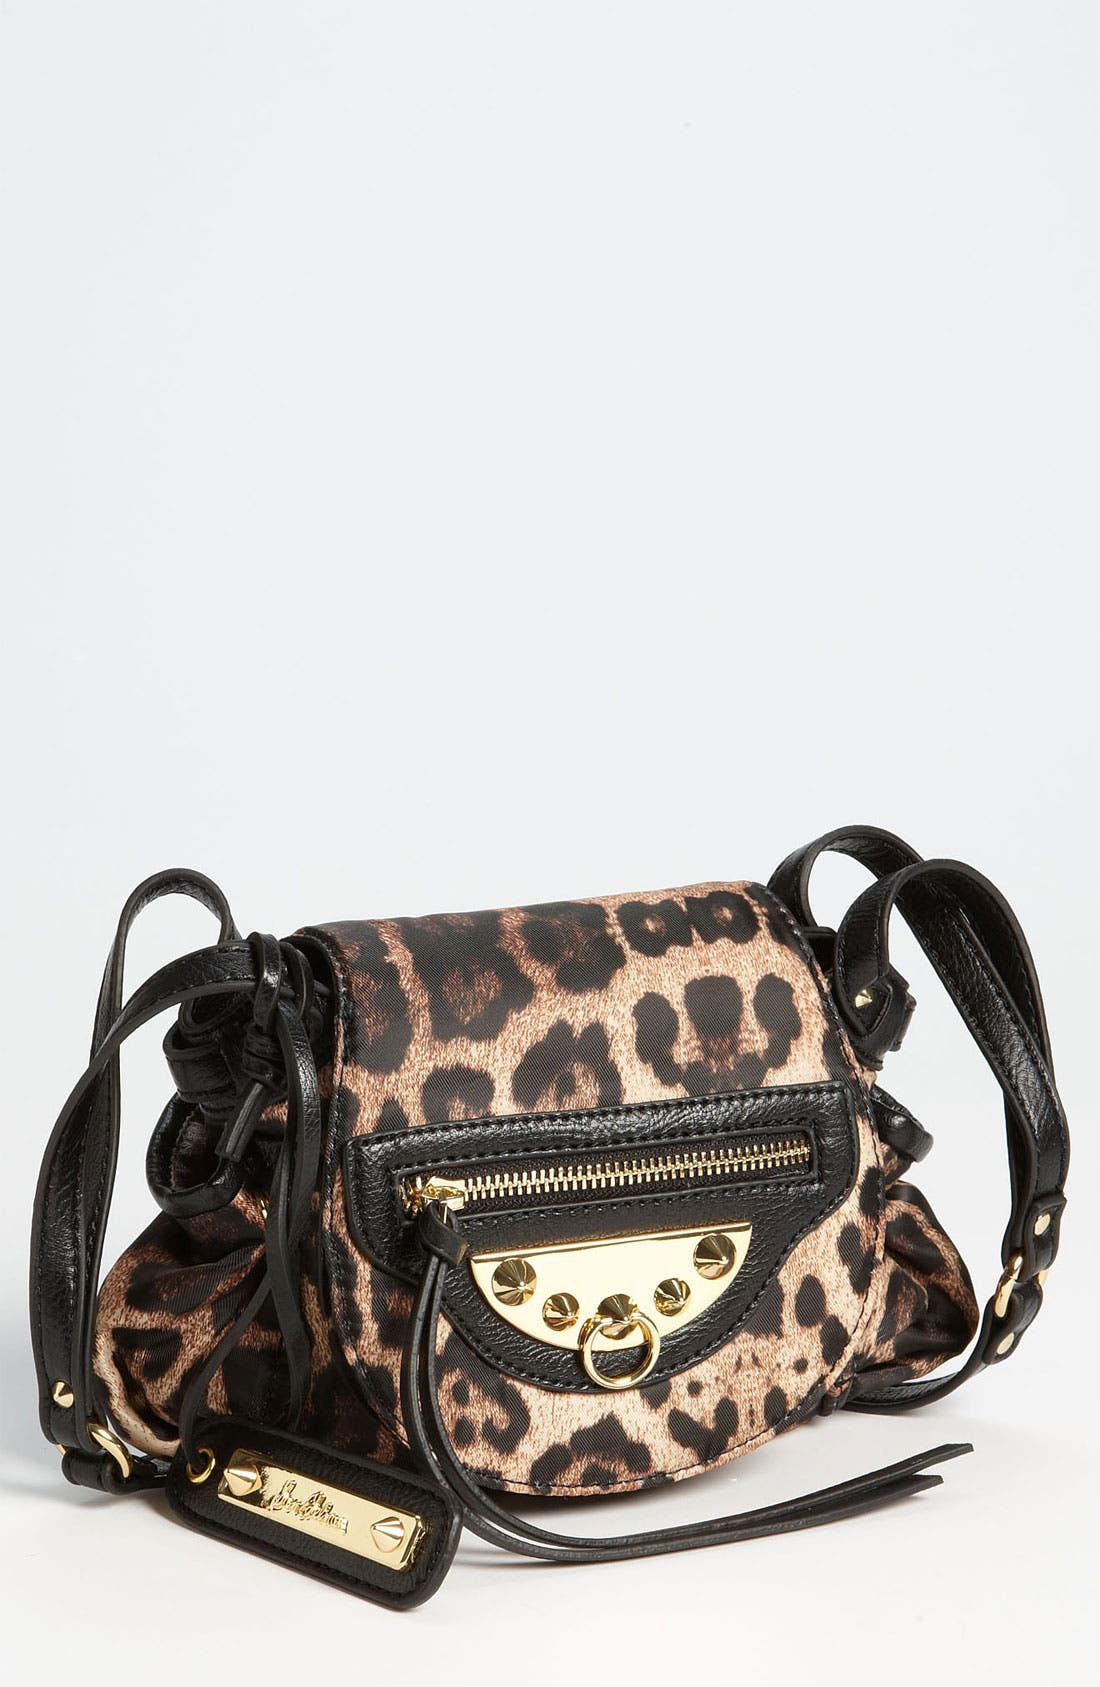 Main Image - Sam Edelman 'Maxine Mini' Crossbody Bag